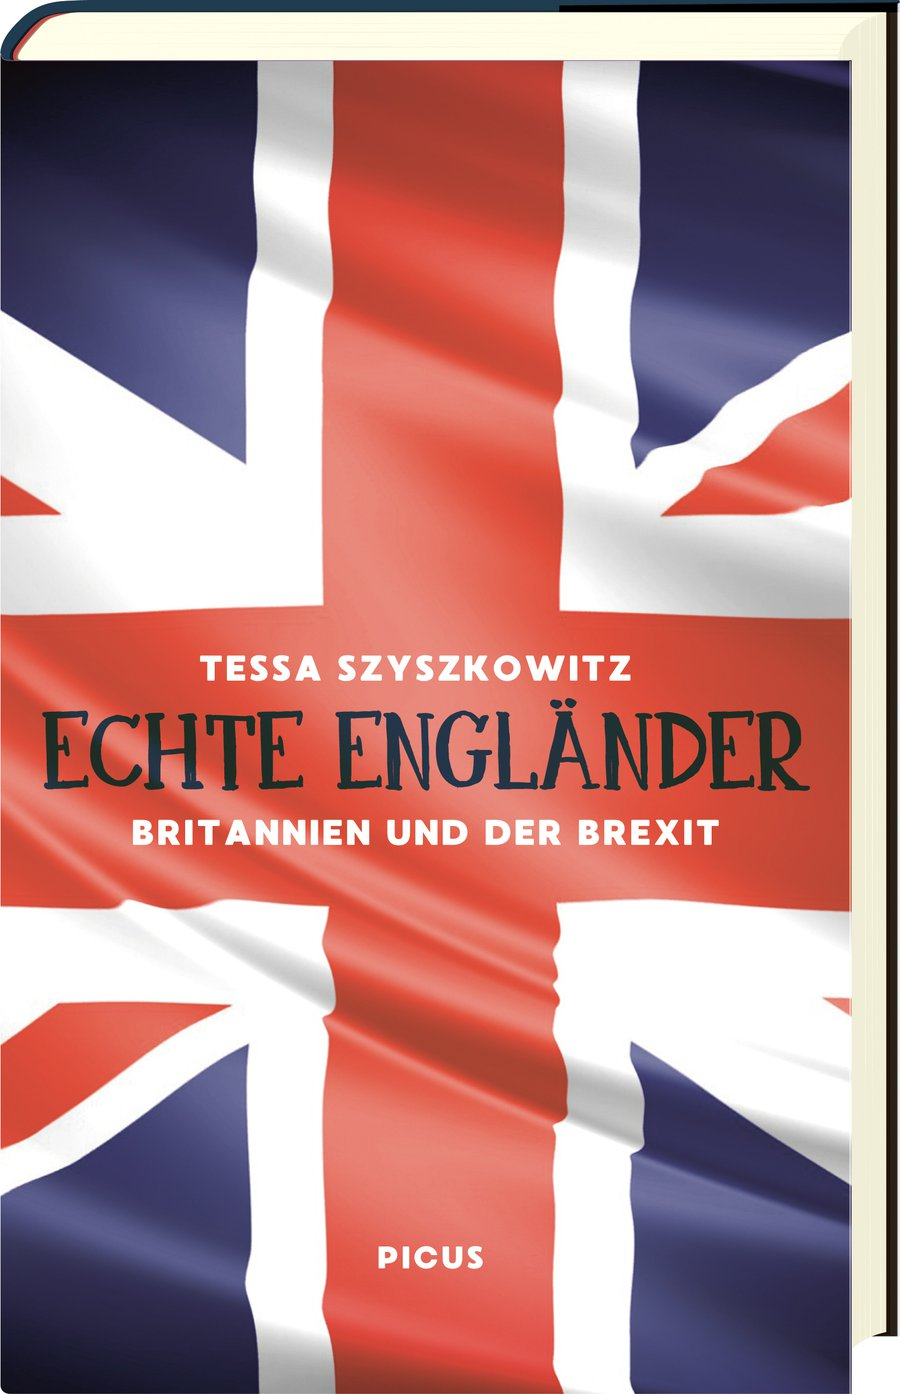 Echte Engländer/ Real Englanders: Britain and Brexit